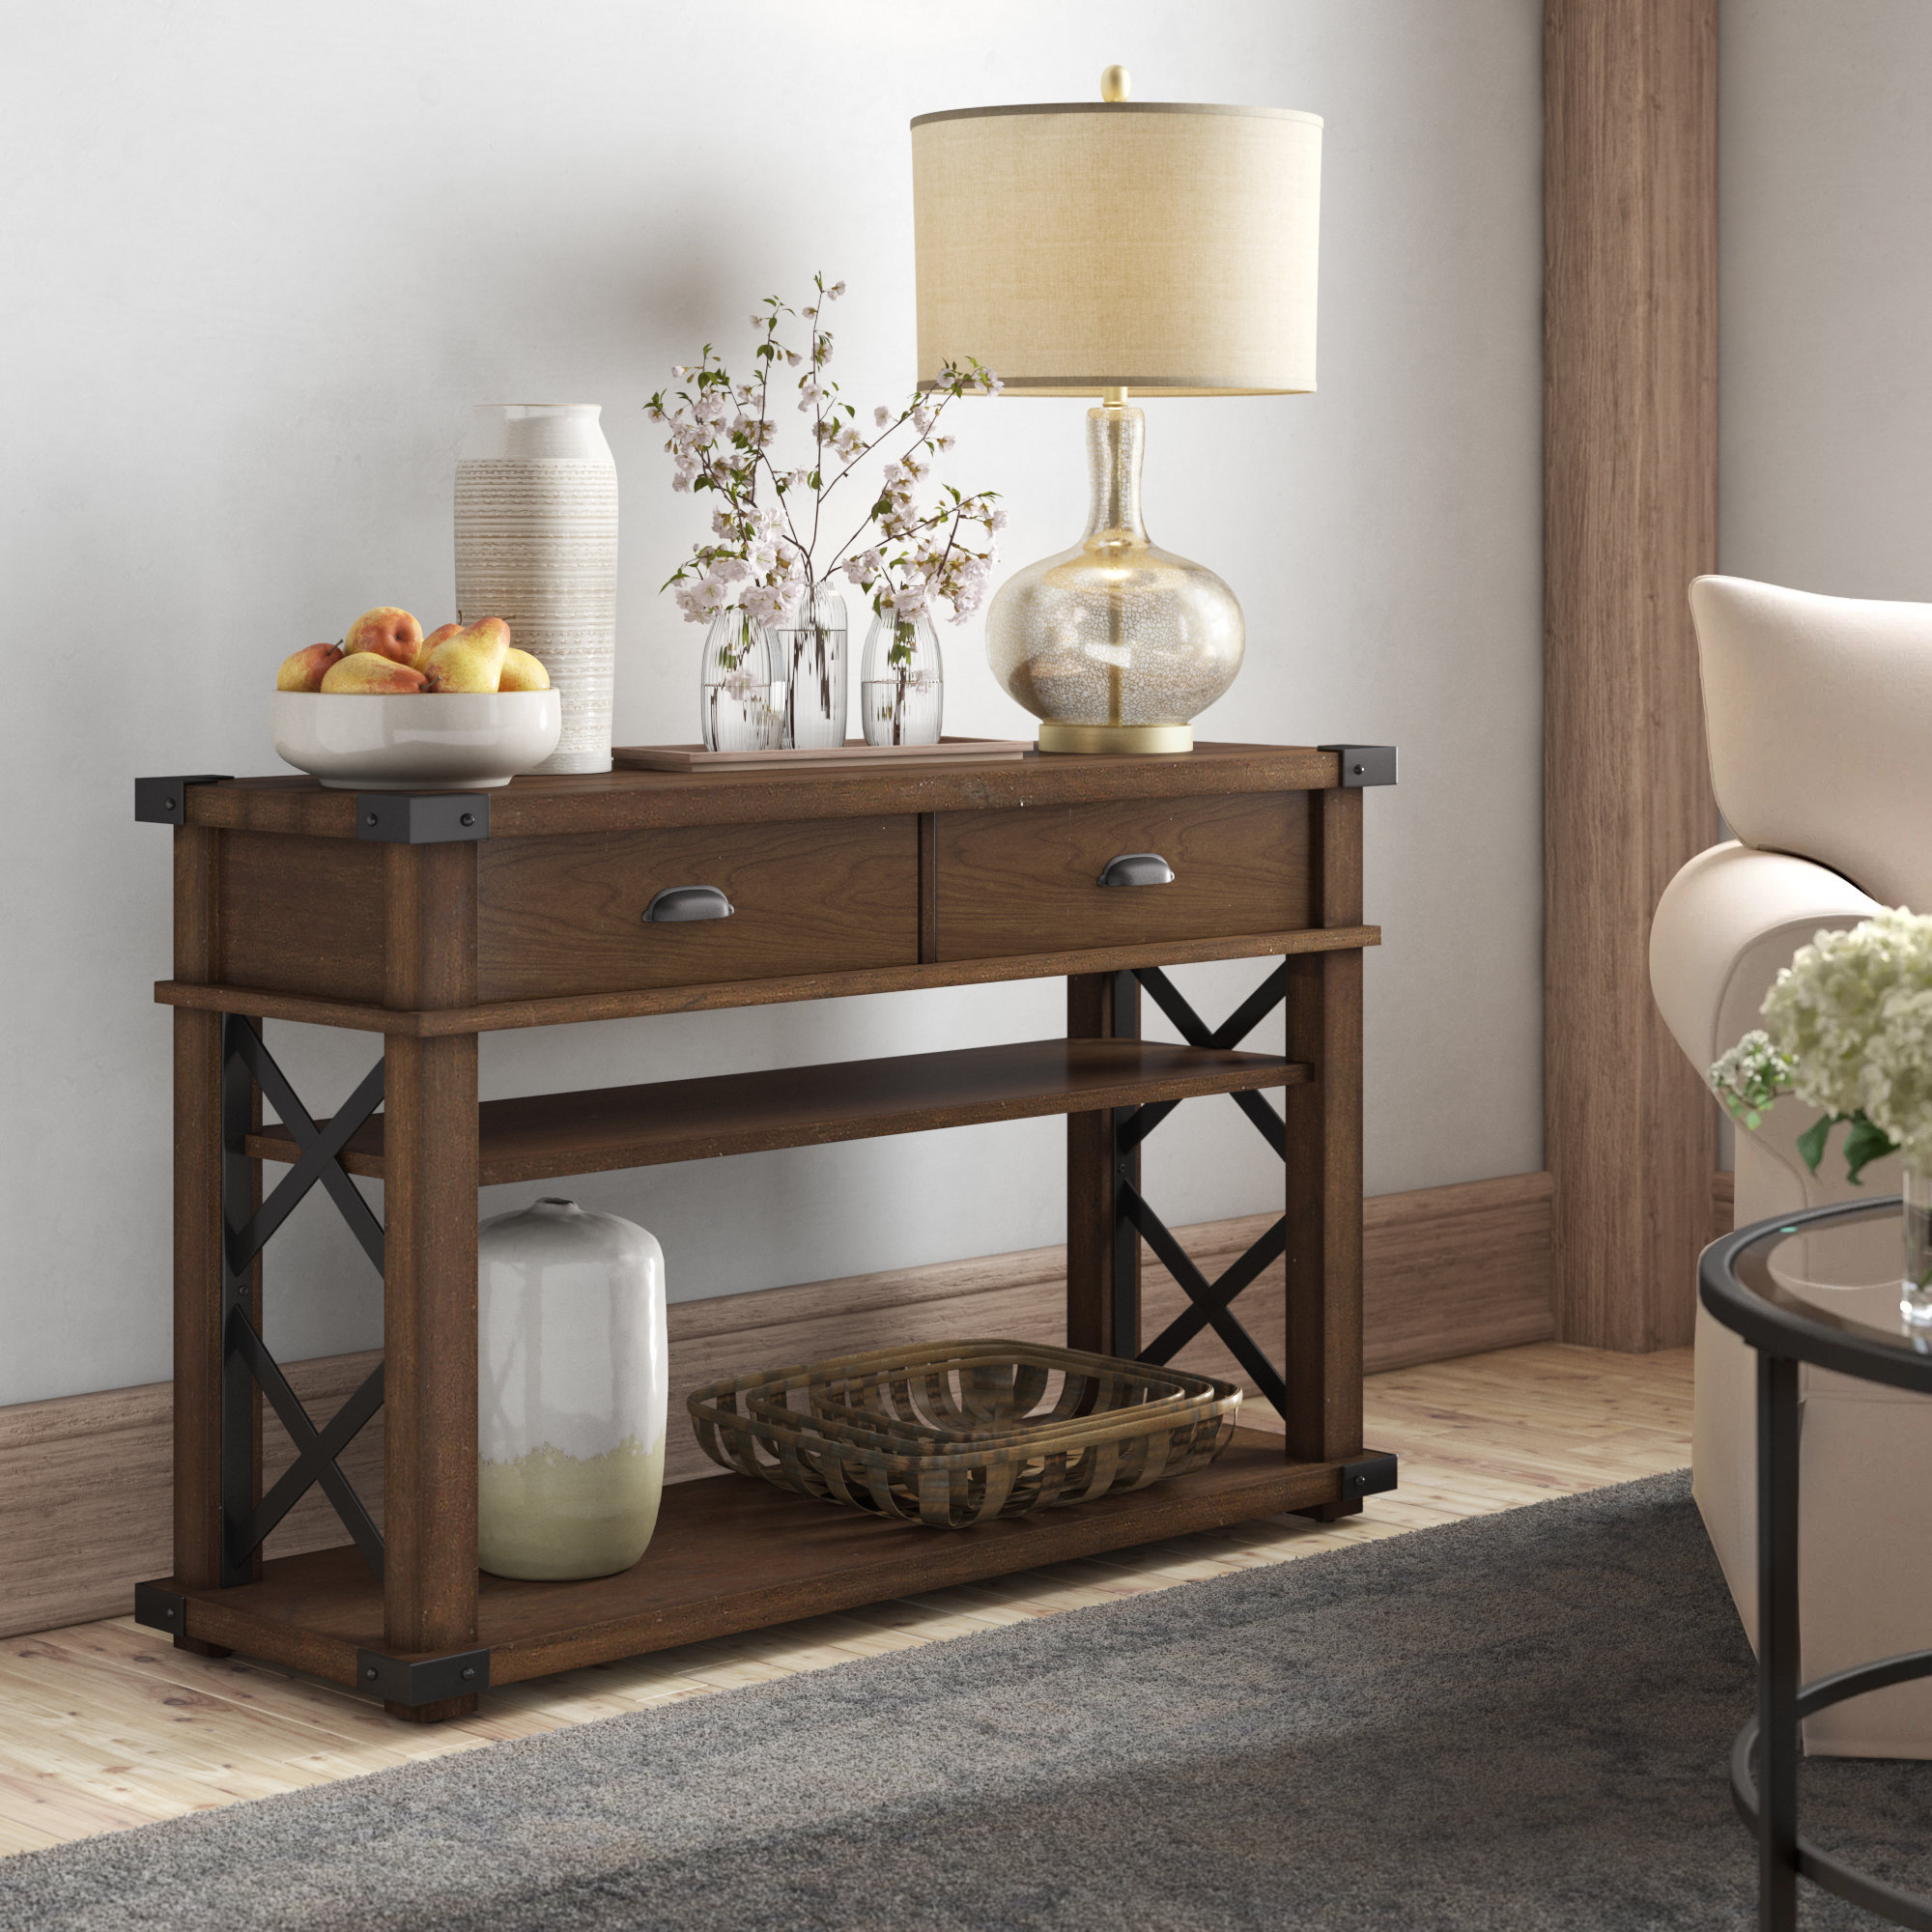 Small Corner Console Table | Wayfair Inside Layered Wood Small Square Console Tables (View 17 of 20)